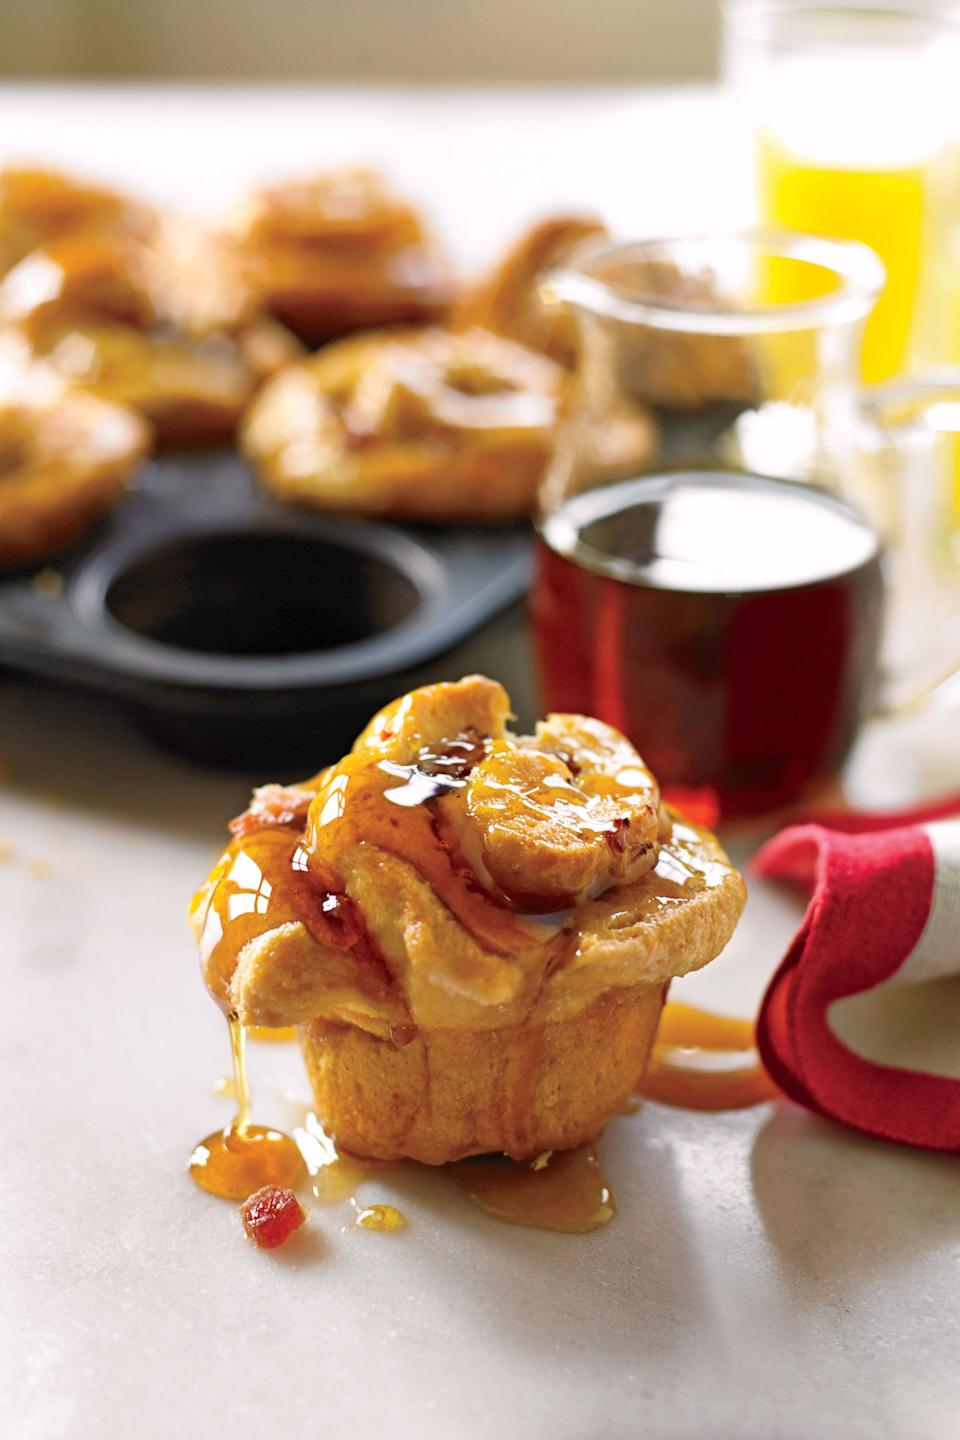 """<p><strong>Recipe:</strong> <a href=""""http://www.myrecipes.com/recipe/ham-swiss-sticky-buns-50400000131955/"""" rel=""""nofollow noopener"""" target=""""_blank"""" data-ylk=""""slk:Ham-and-Swiss Sticky Buns"""" class=""""link rapid-noclick-resp""""><strong>Ham-and-Swiss Sticky Buns</strong></a></p> <p>Stuff the dough deep into the muffin cups so that the tops rise into a cheesy dome while baking.</p>"""